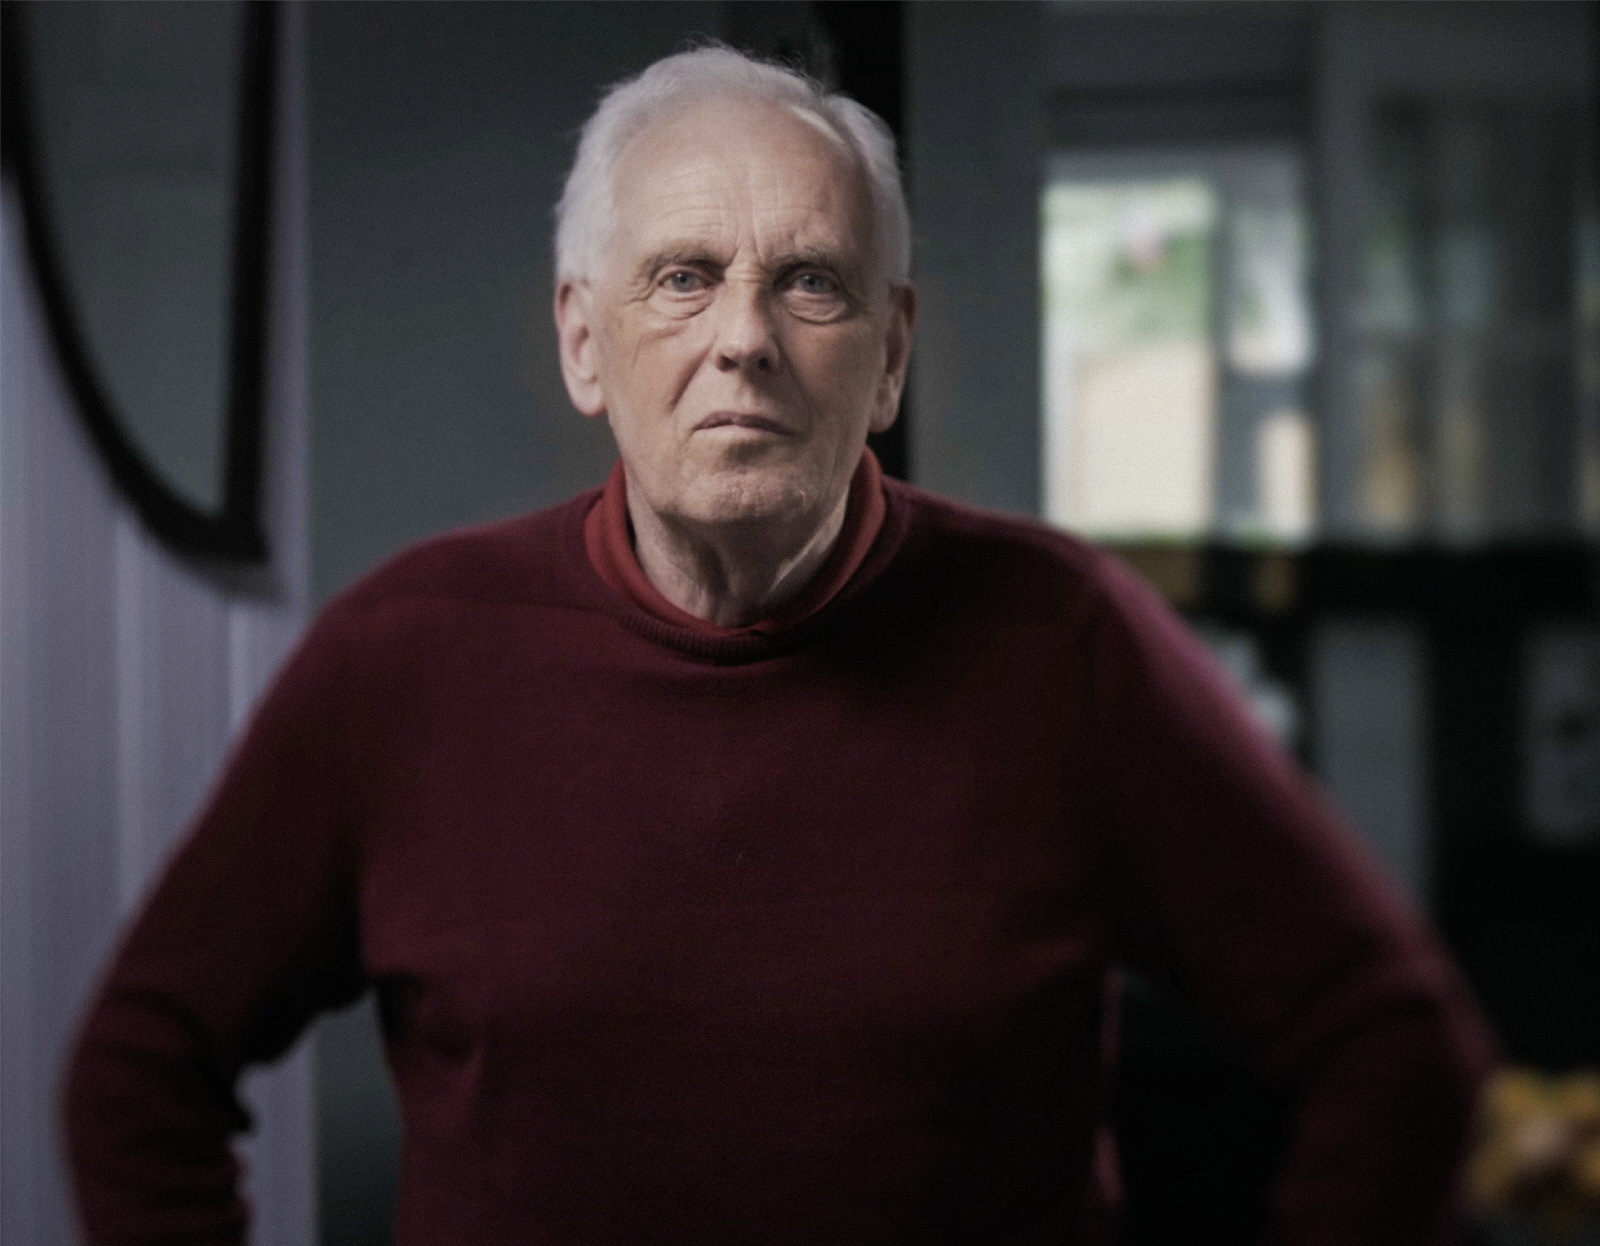 Murderers among us - true crime series on TG4